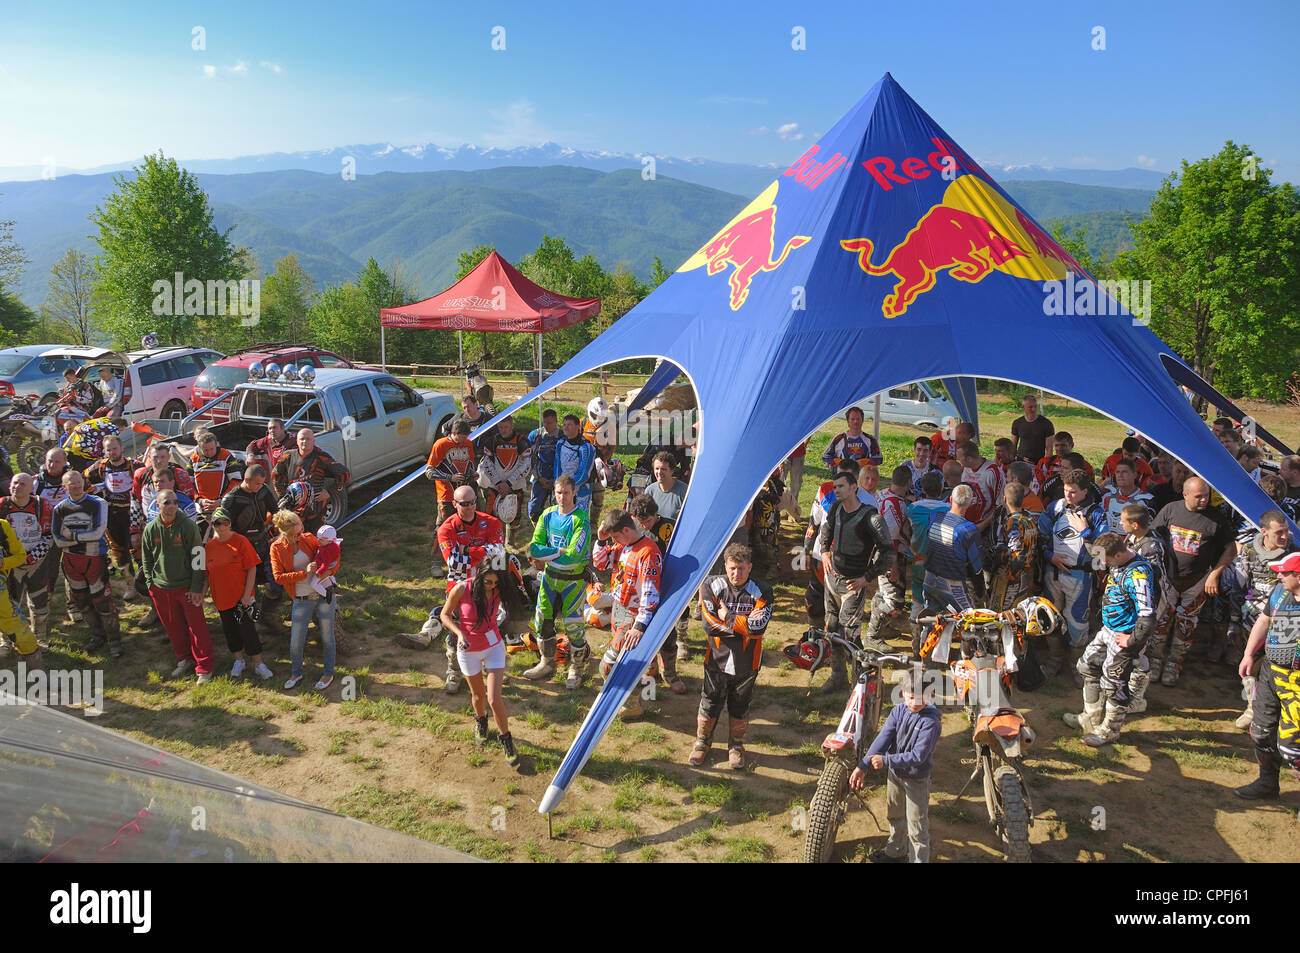 "GHELARI, ROMANIA - MAY 5 2012: group of motocross riders, at briefing hard enduro race ""Enduro Panorama - AIRWAVES Stock Photo"